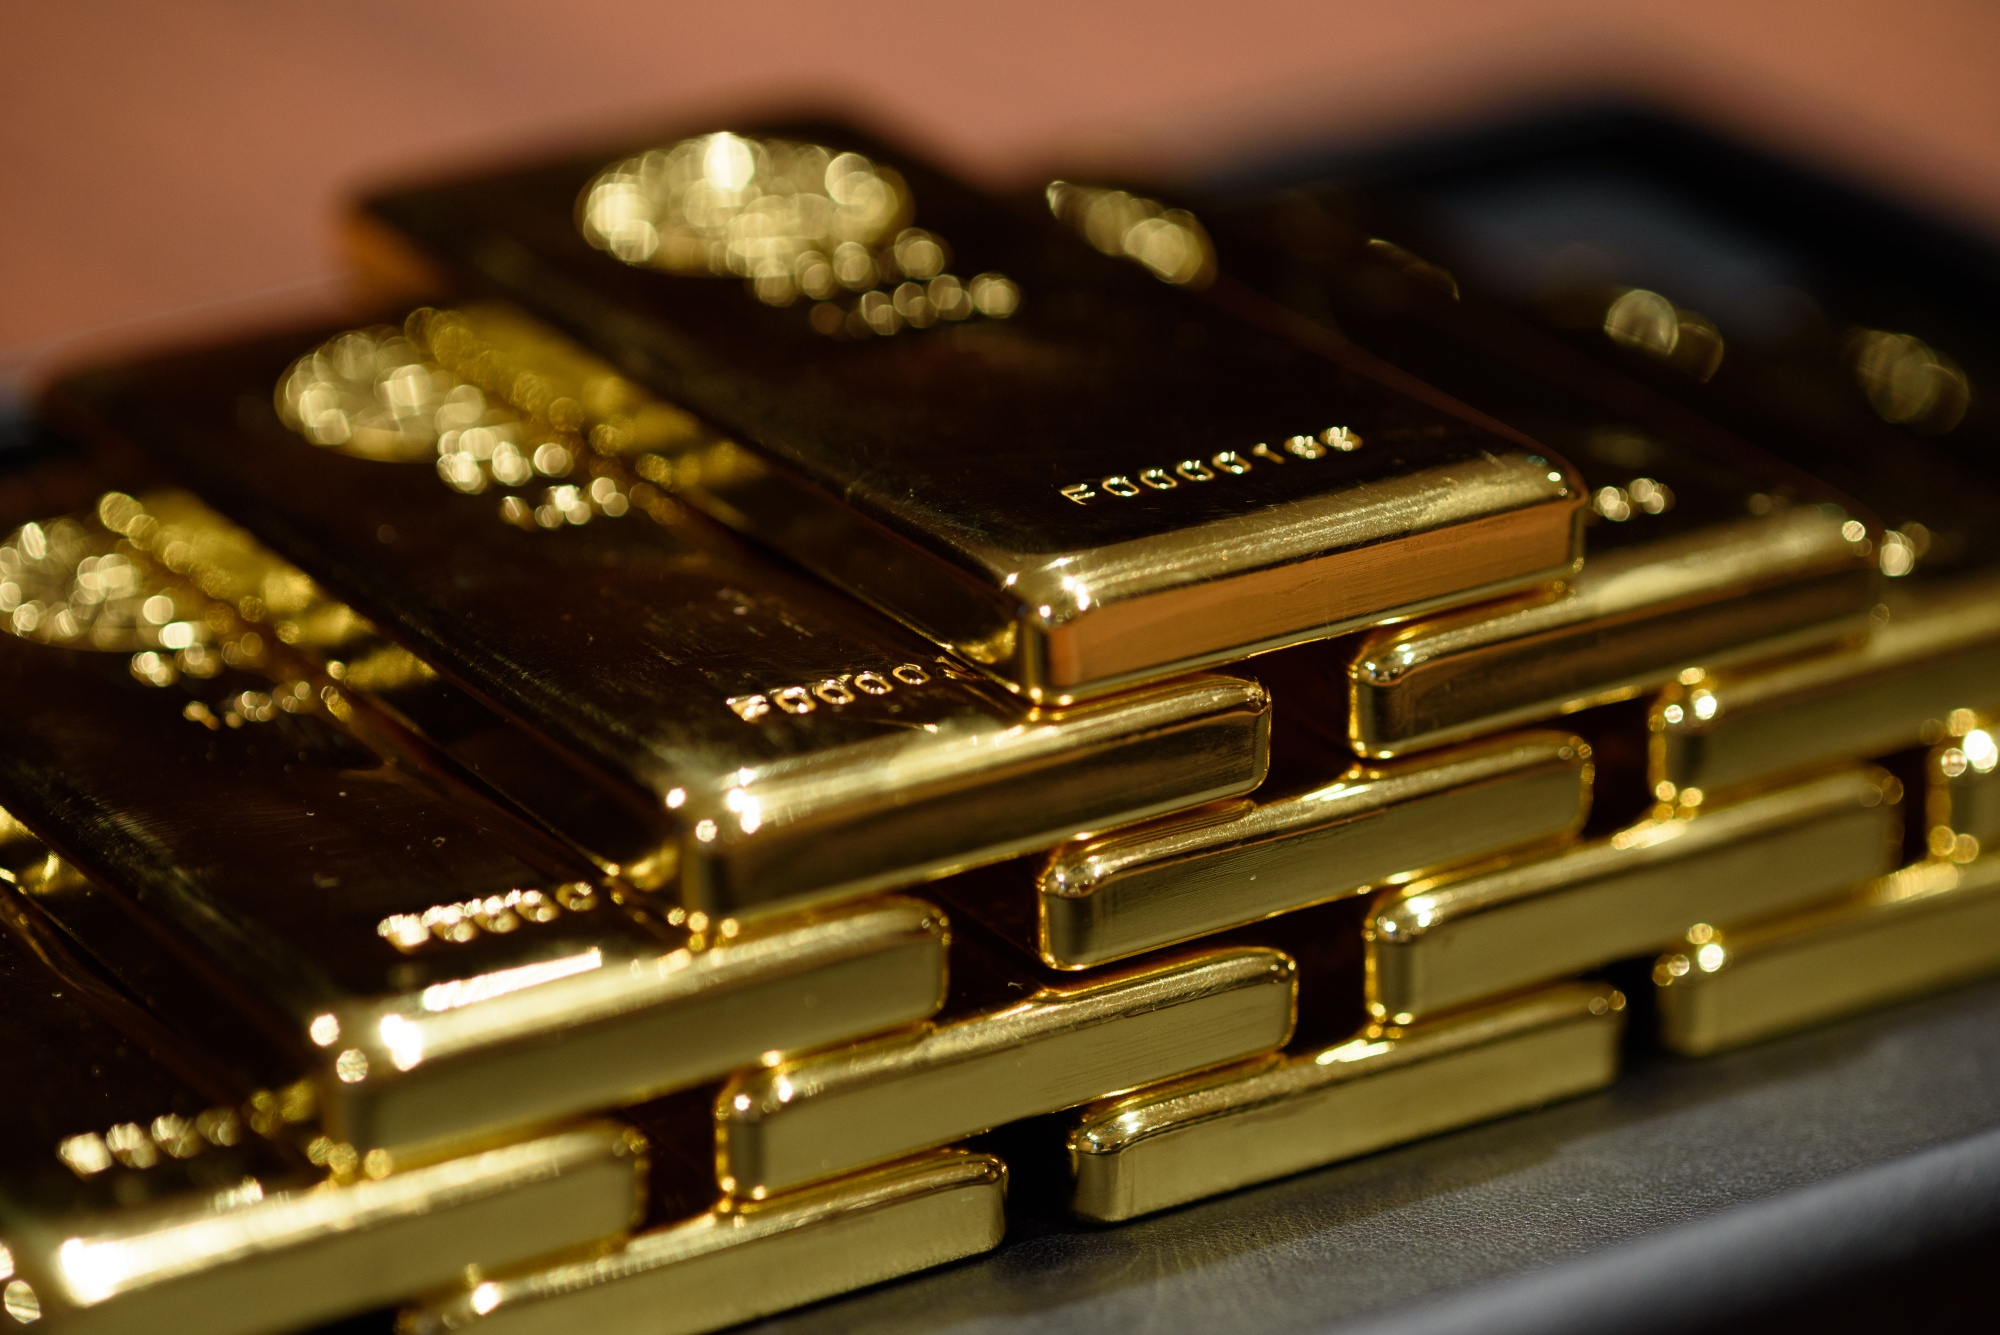 When A Hot Gold Trade Blew Up The Rush